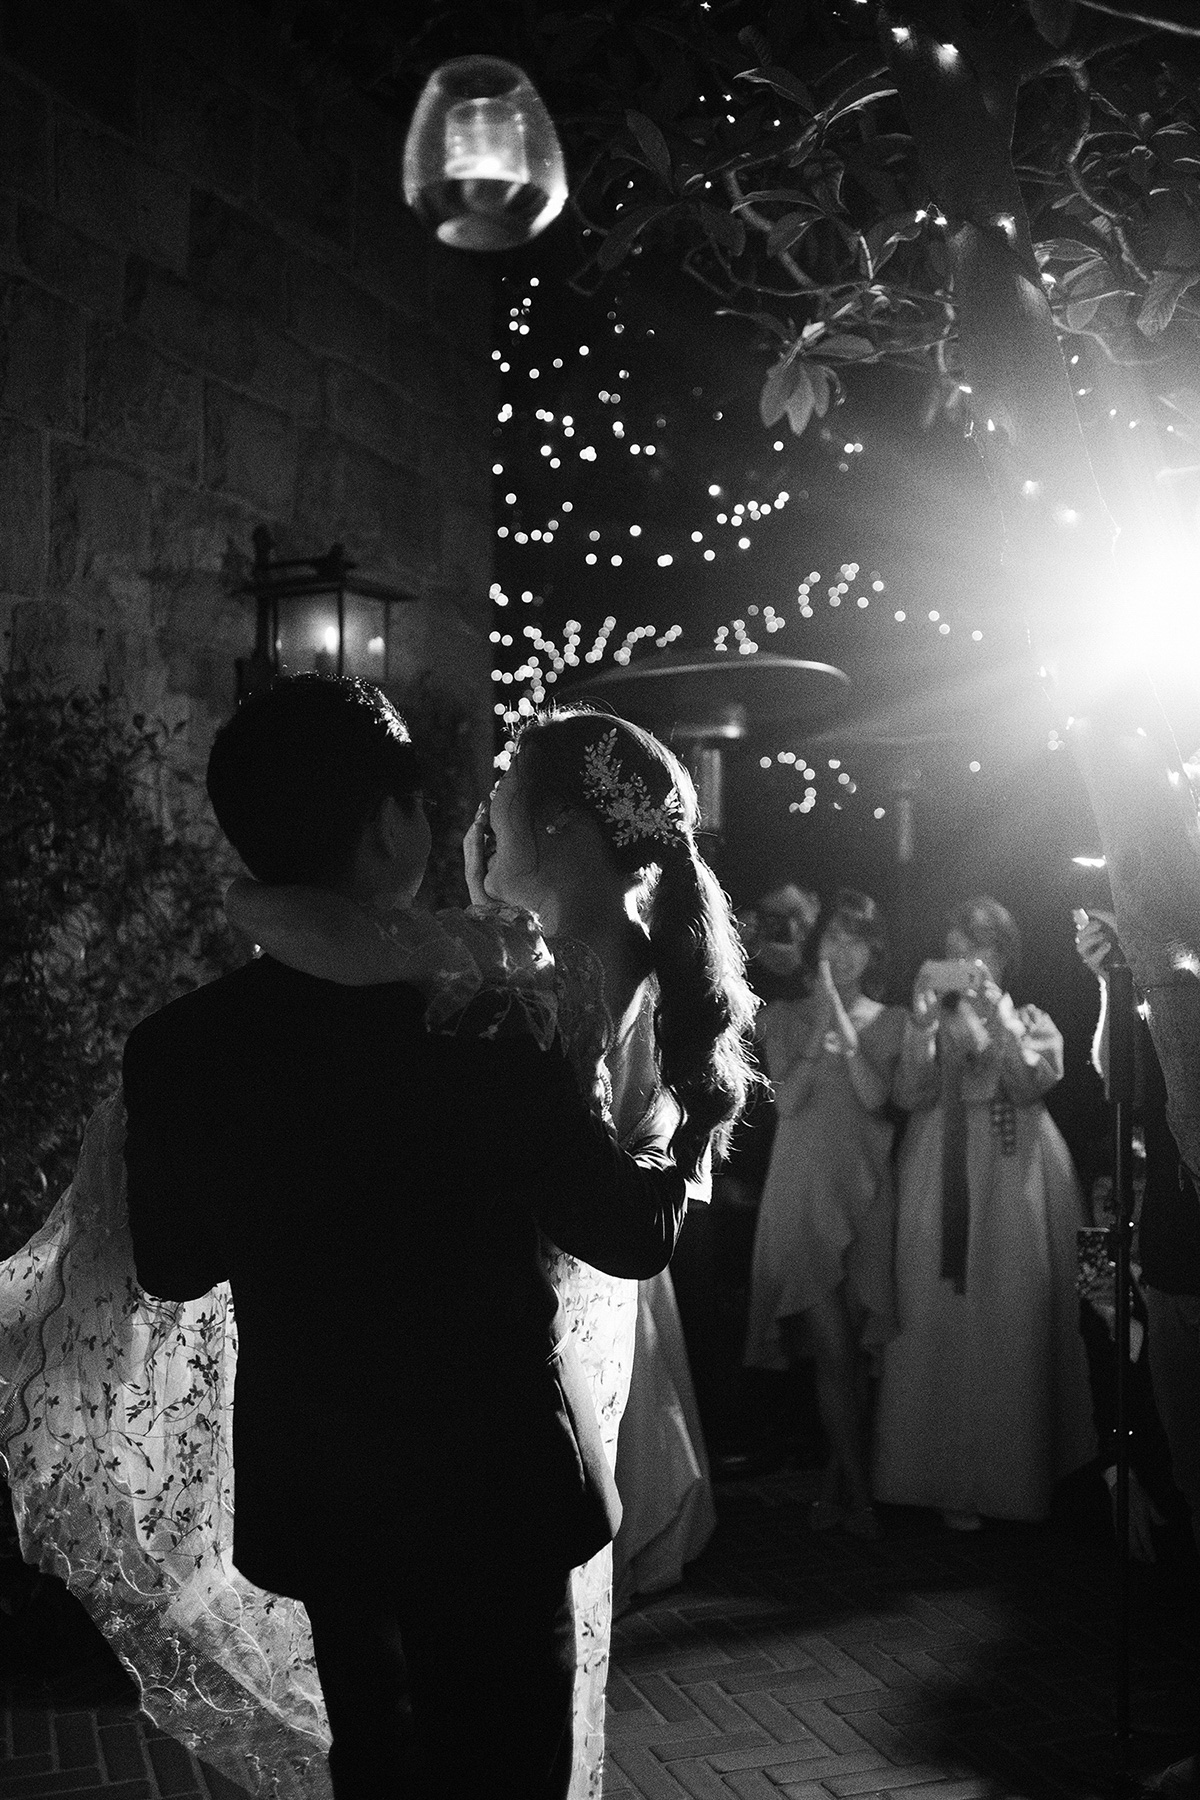 couple first dance at wedding reception under string lights